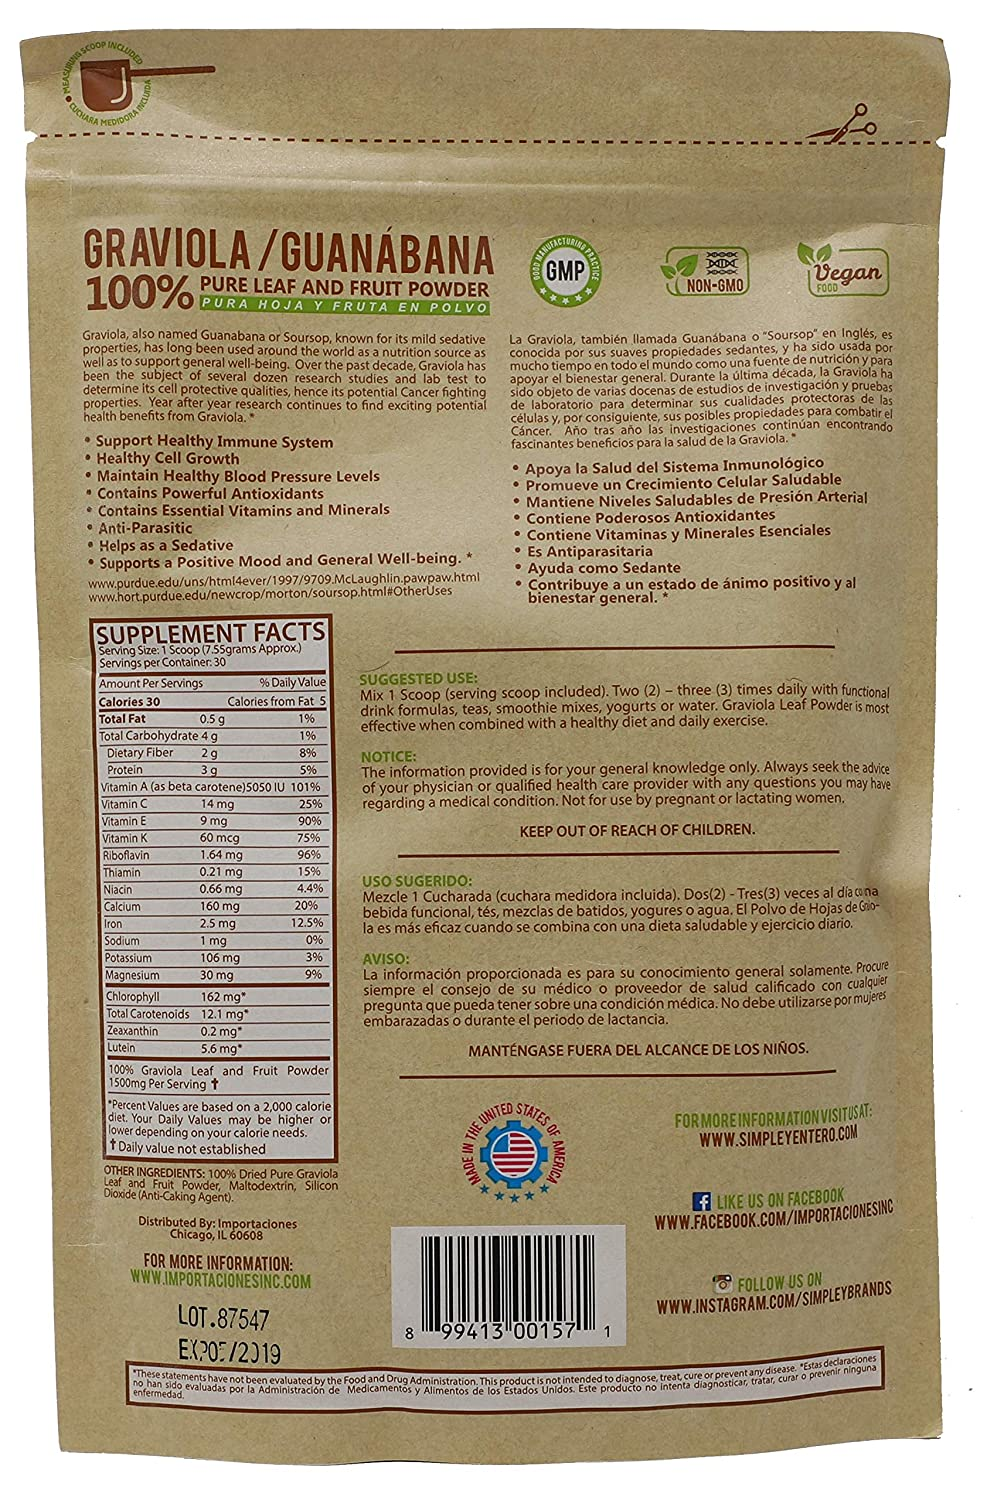 Amazon.com: Graviola Guanabana Powder Mix | 100% Pure Leaf and Soursop Fruit Powder to Support Healthy Immune System, GMP Certified, Non-GMO, Vegan, ...